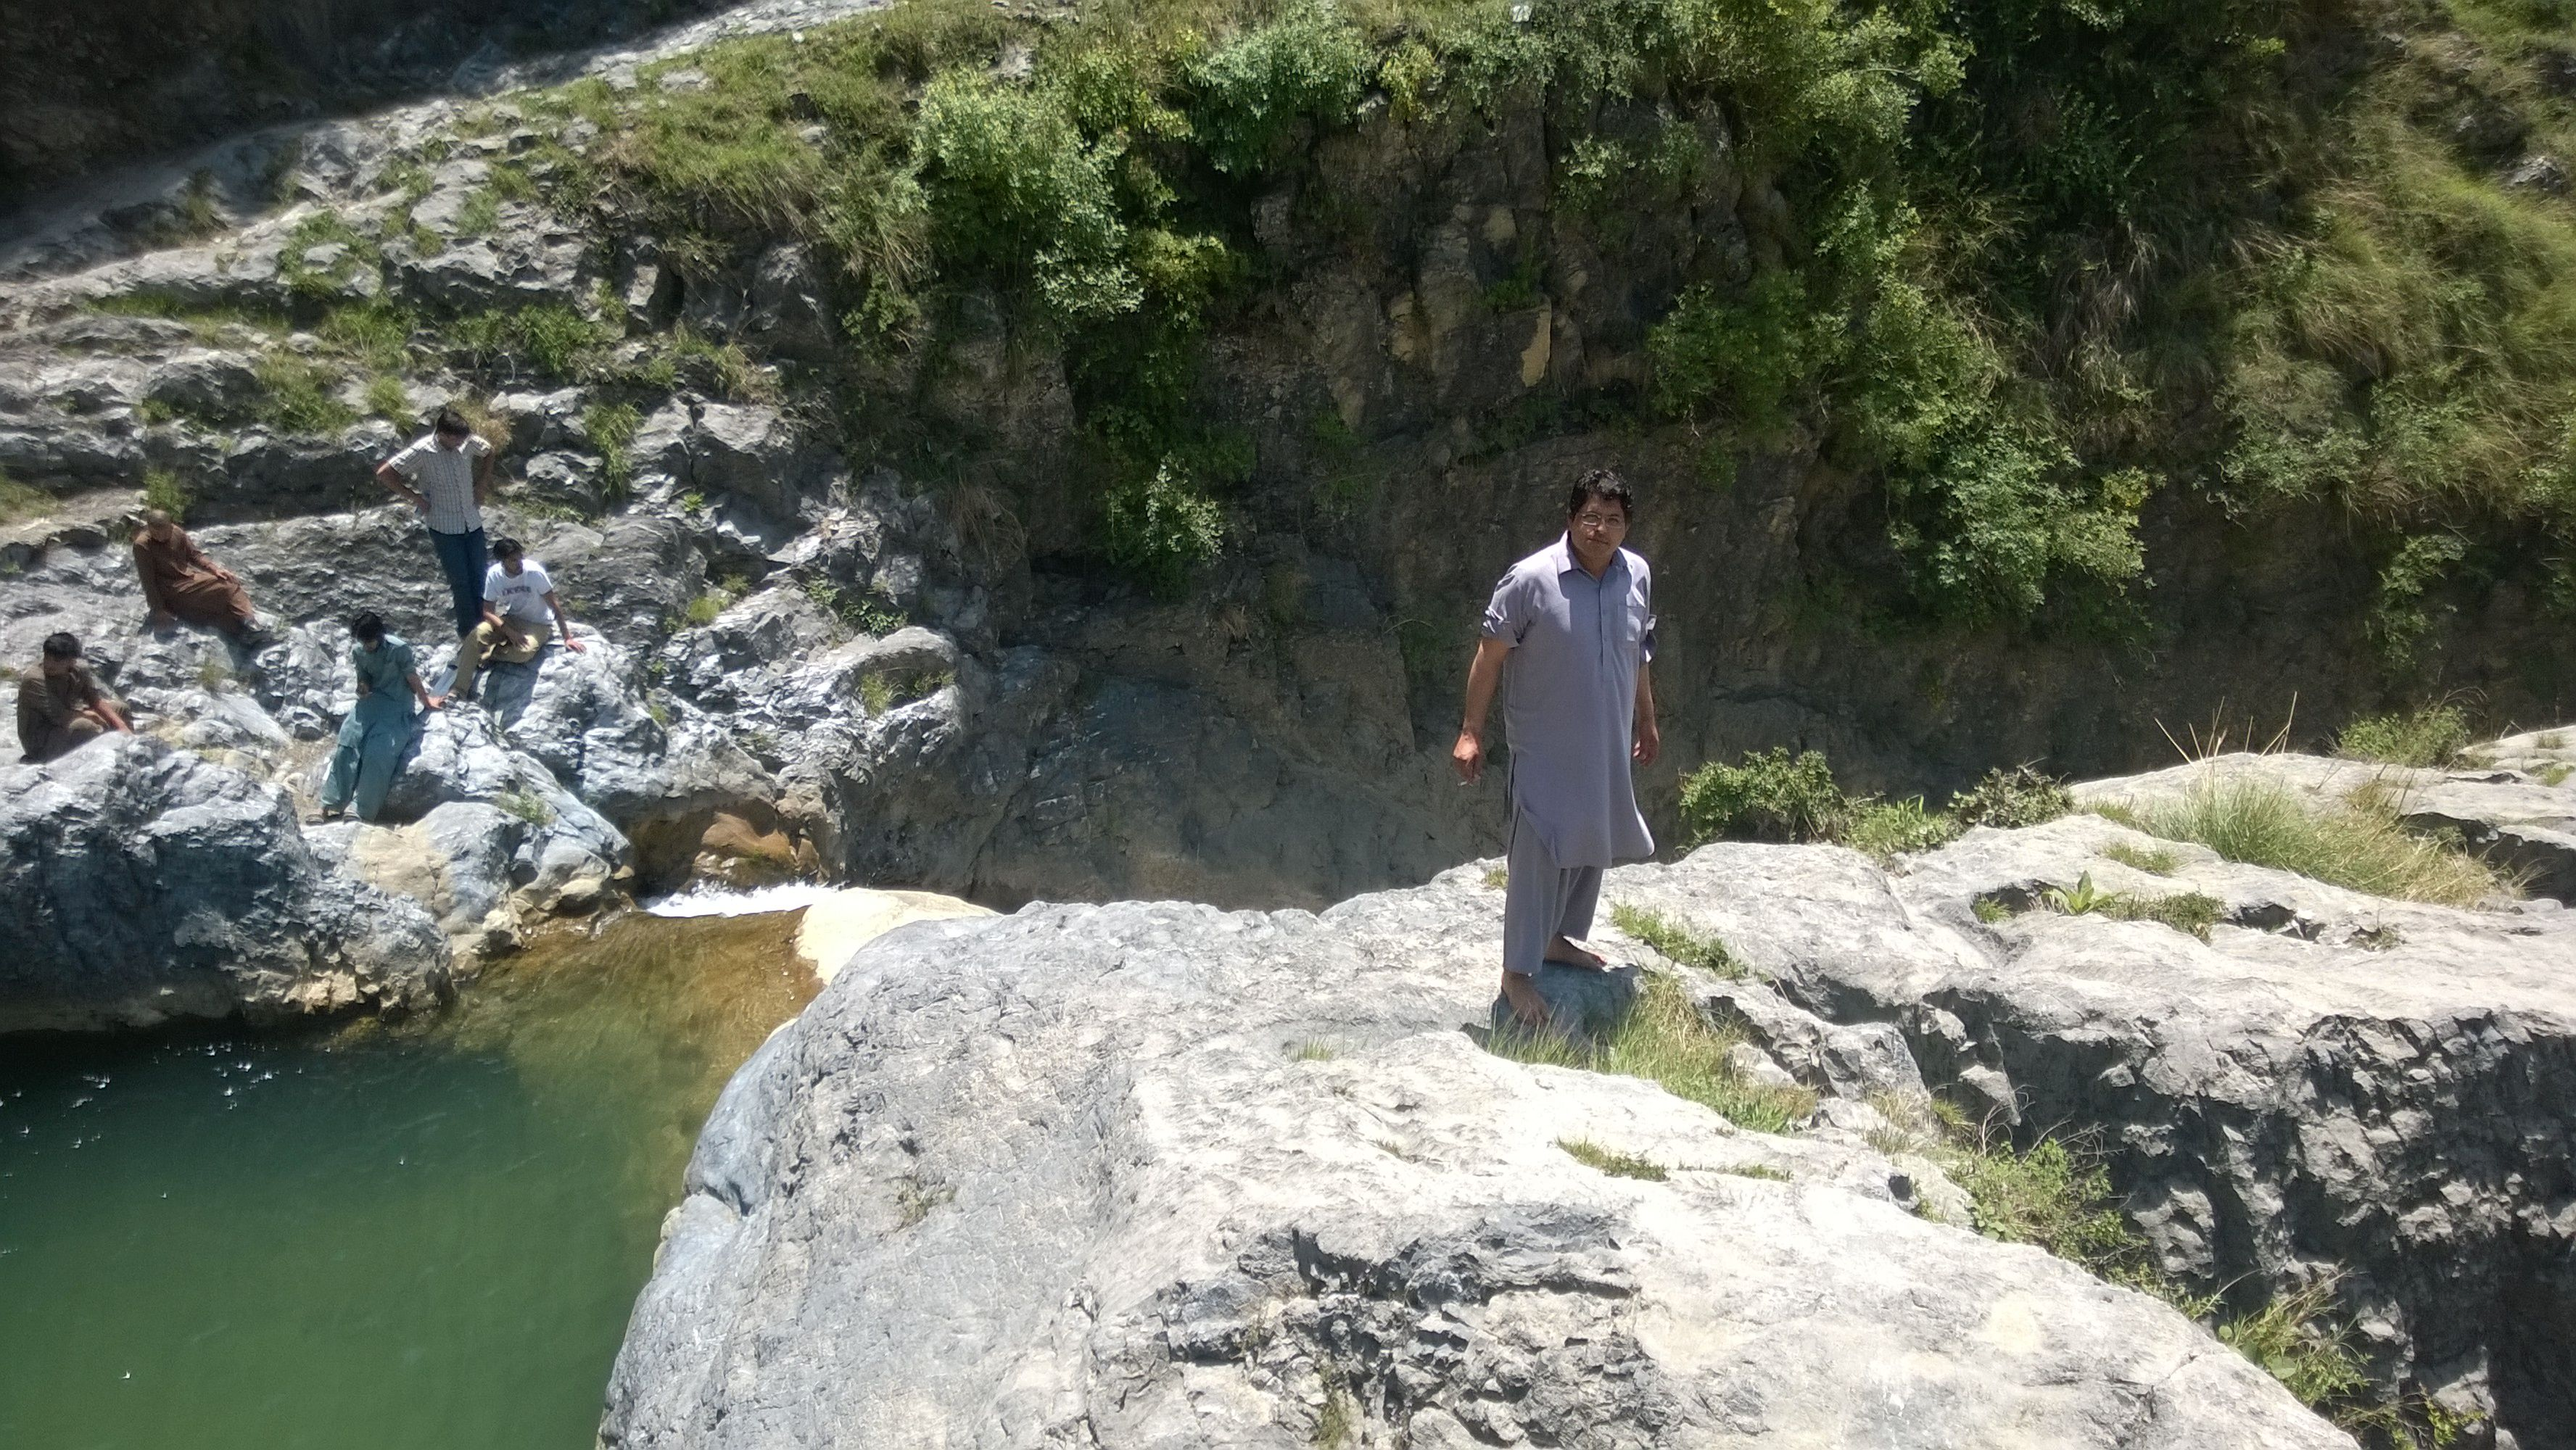 Khattakkum, the only person to remain in his clothes at the waterfalls.... sober... indeed